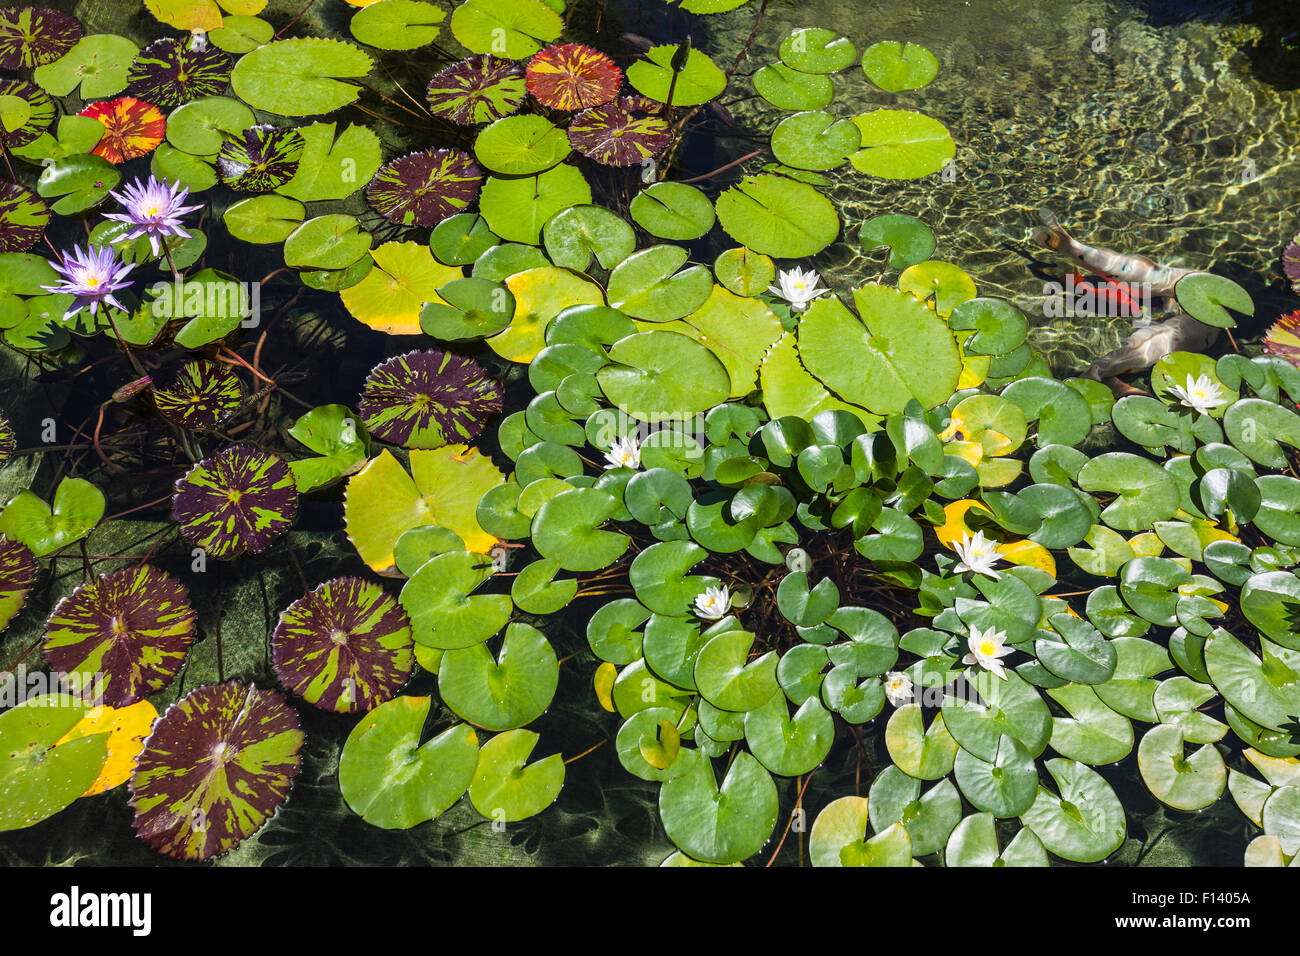 Lily pad pond with flowers and fish. - Stock Image